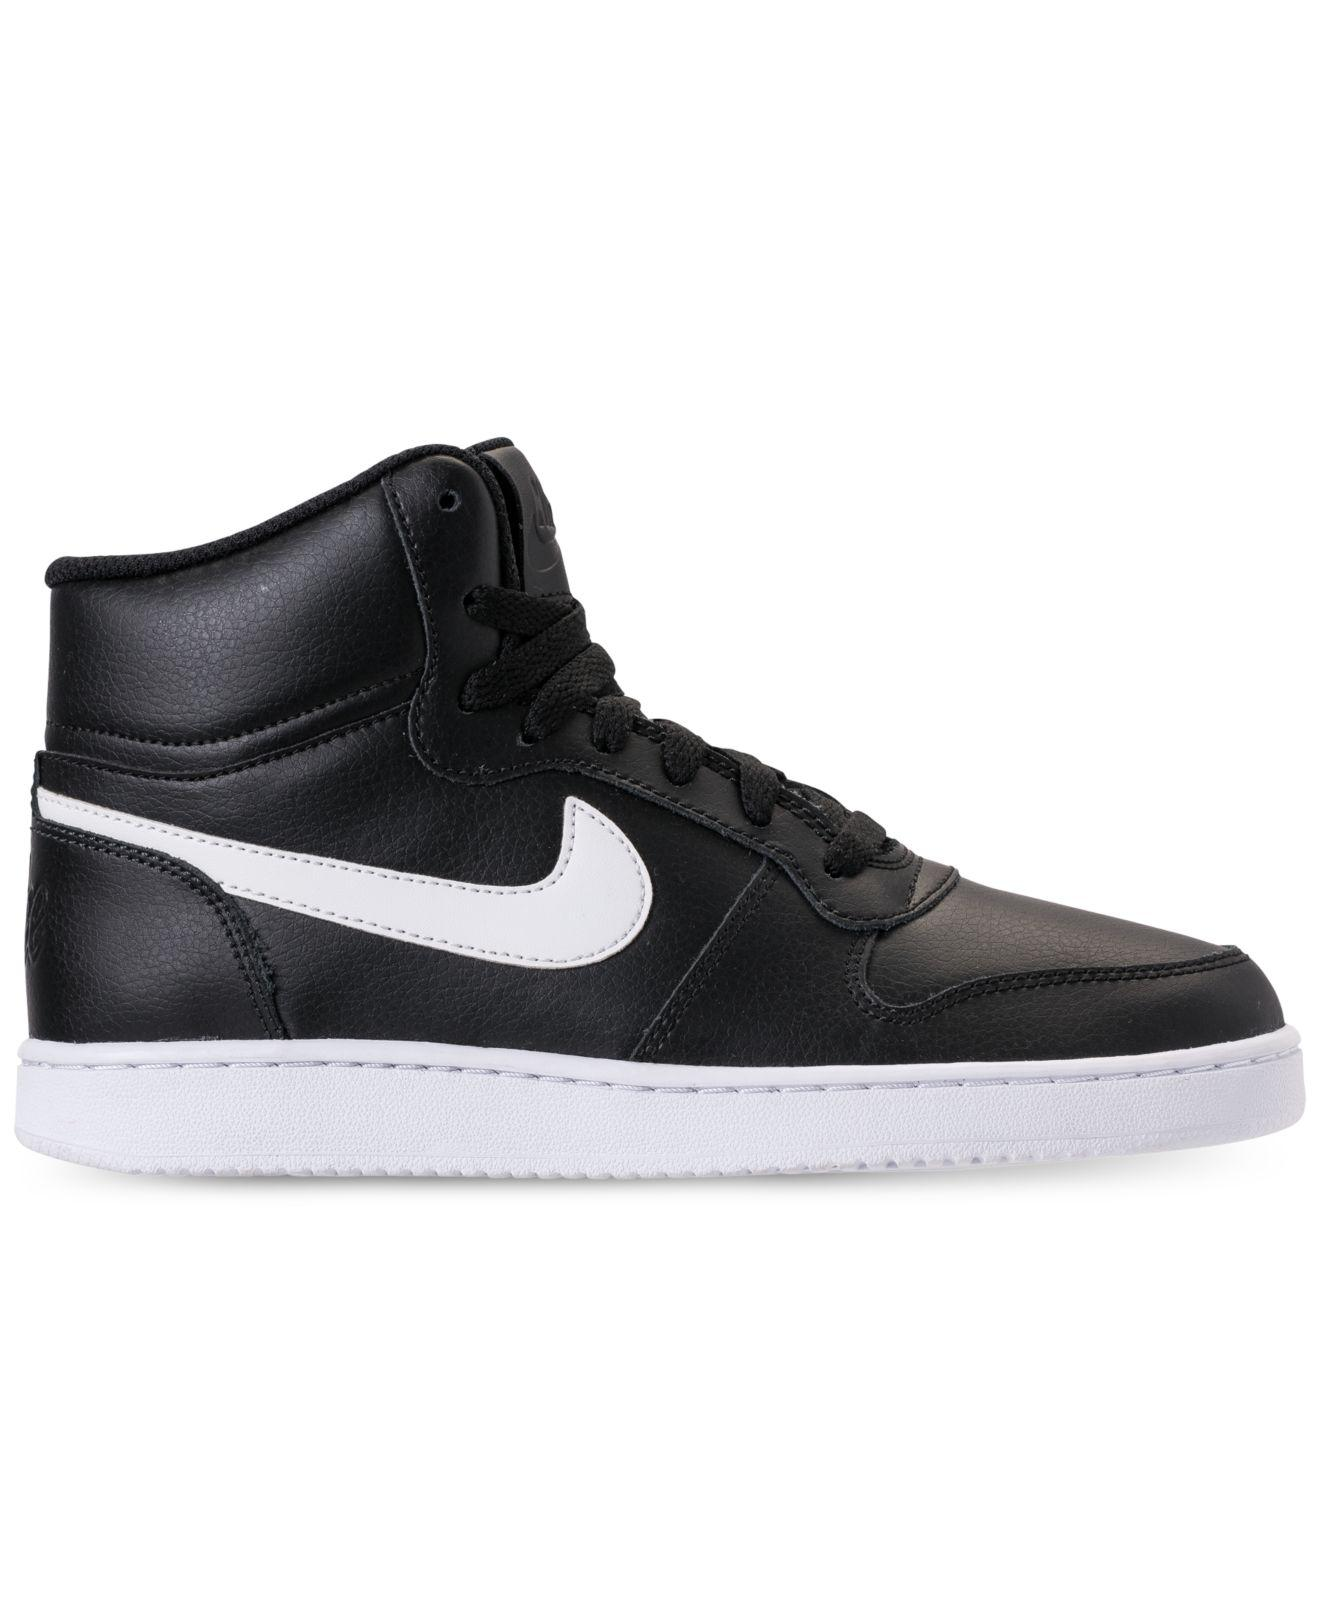 93c07688c7f363 Lyst - Nike Ebernon Mid Casual Sneakers From Finish Line in Black